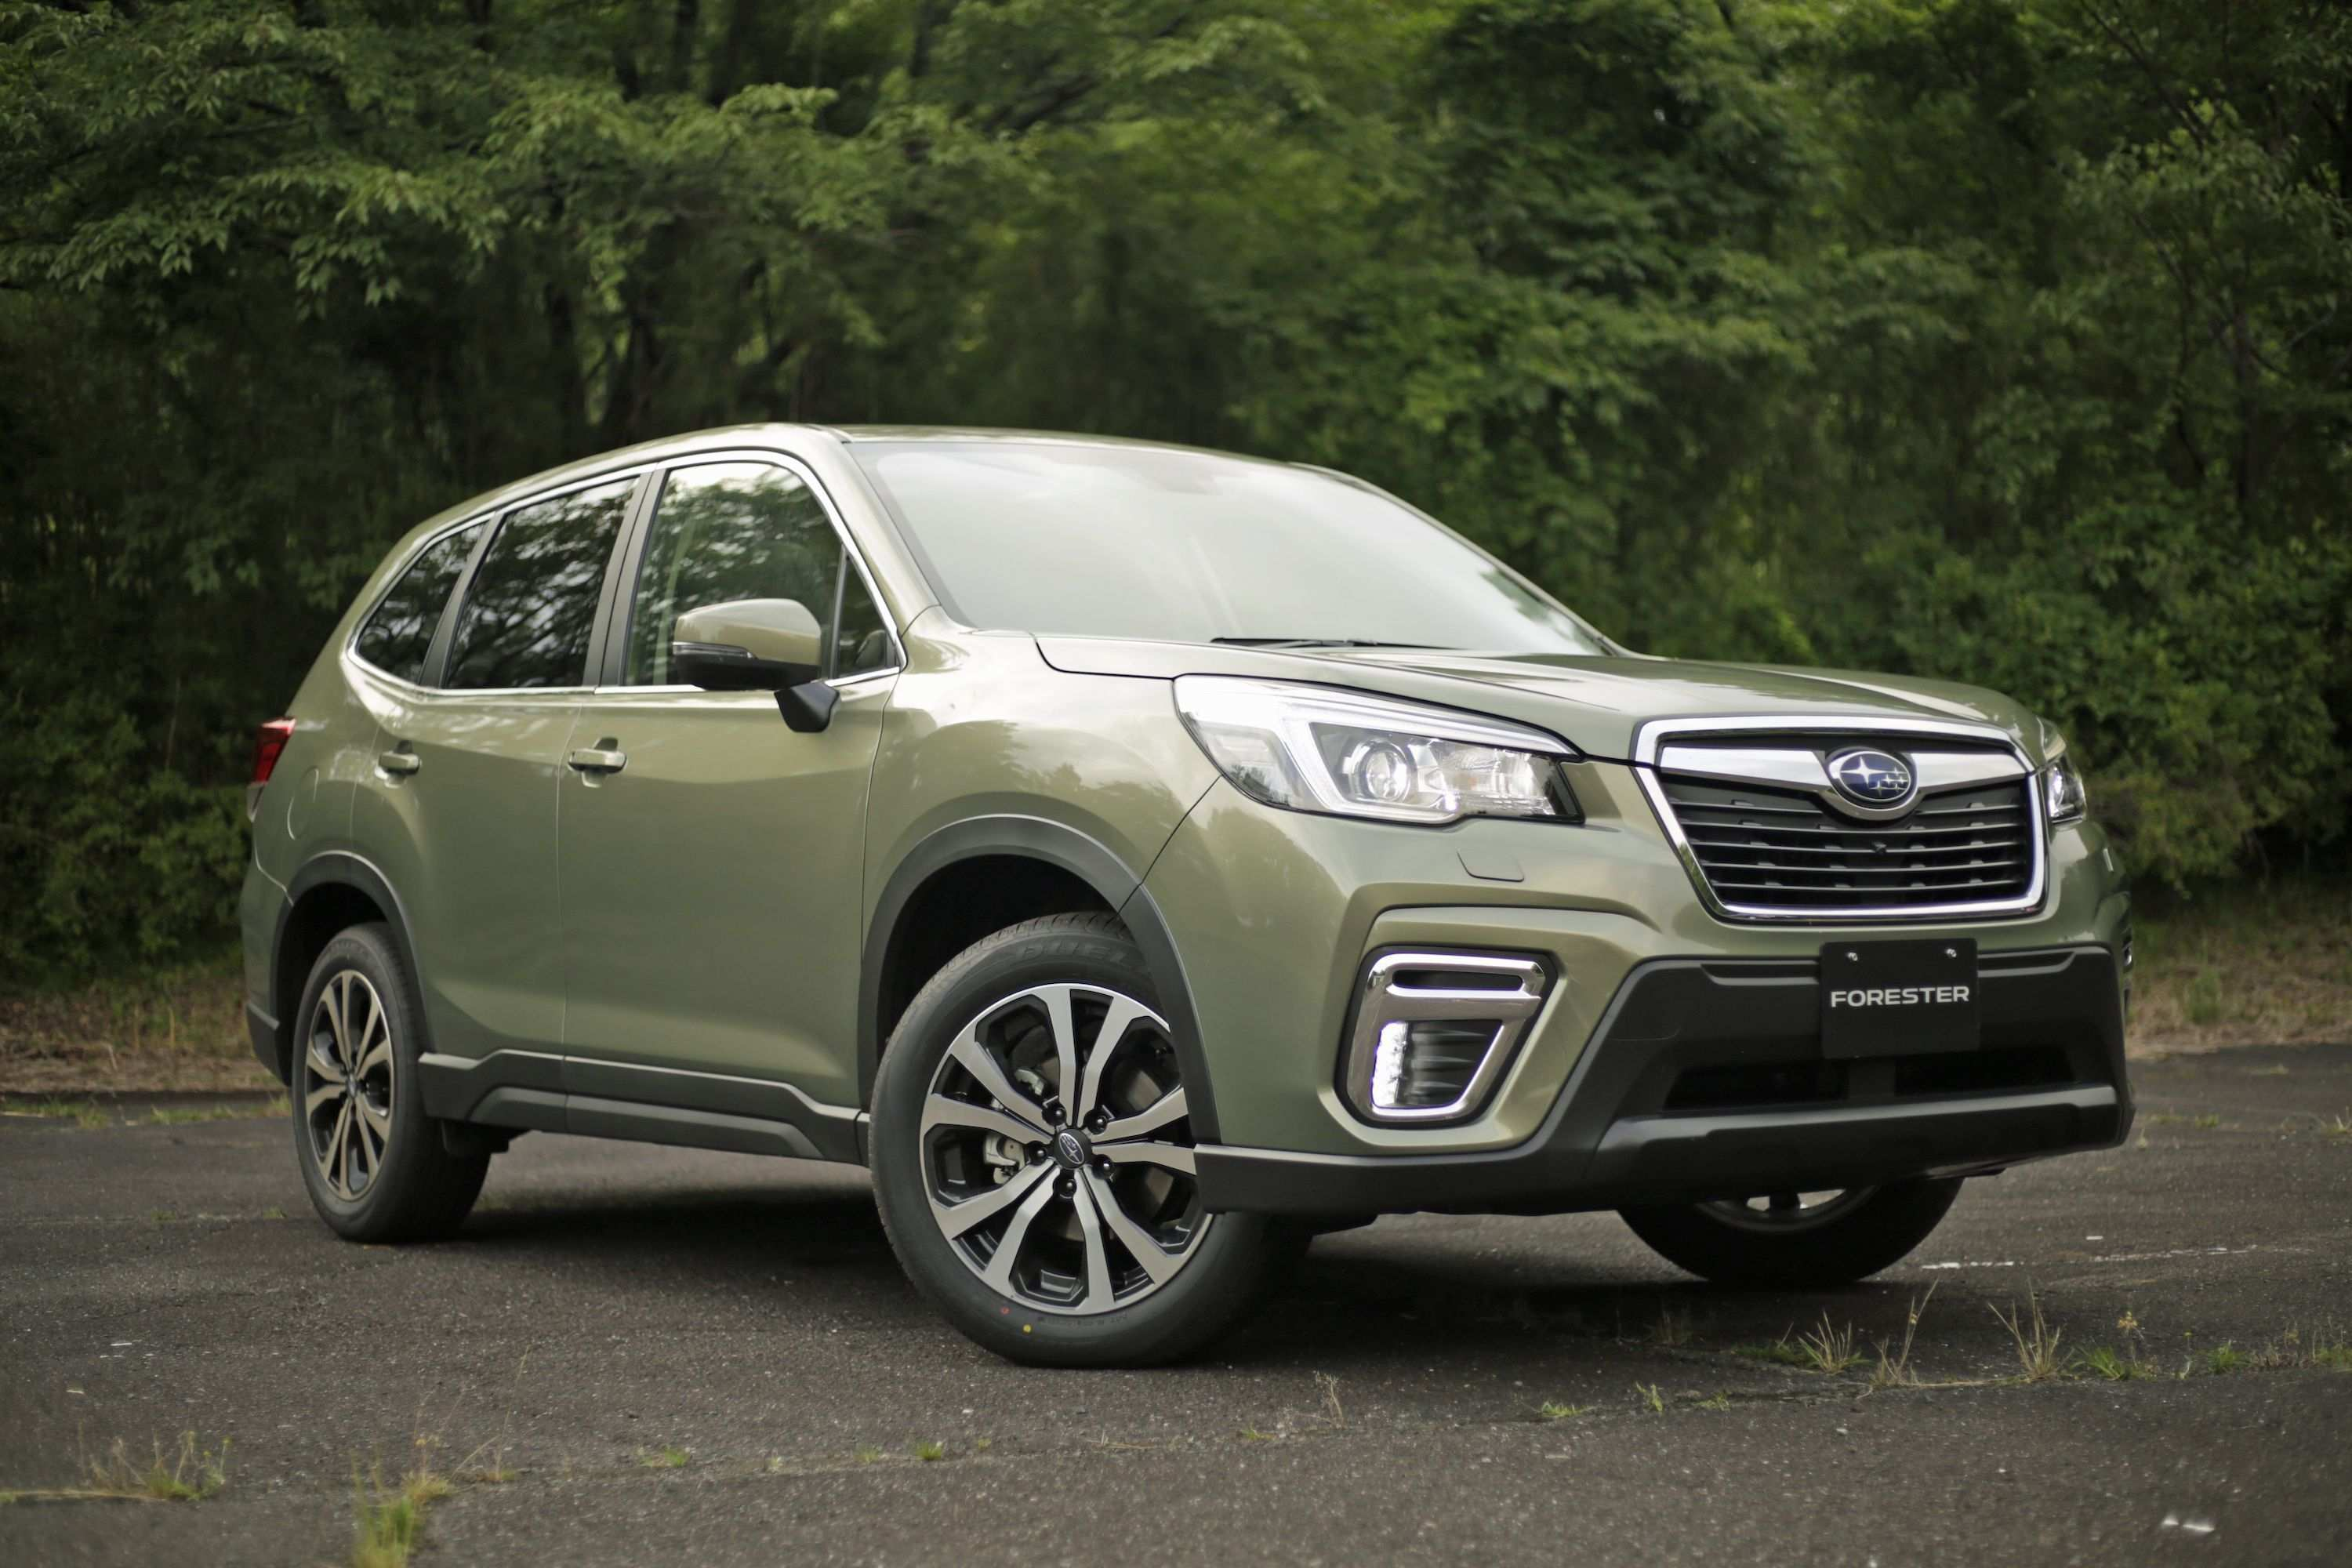 79 New Subaru Forester 2019 Gas Mileage First Drive by Subaru Forester 2019 Gas Mileage